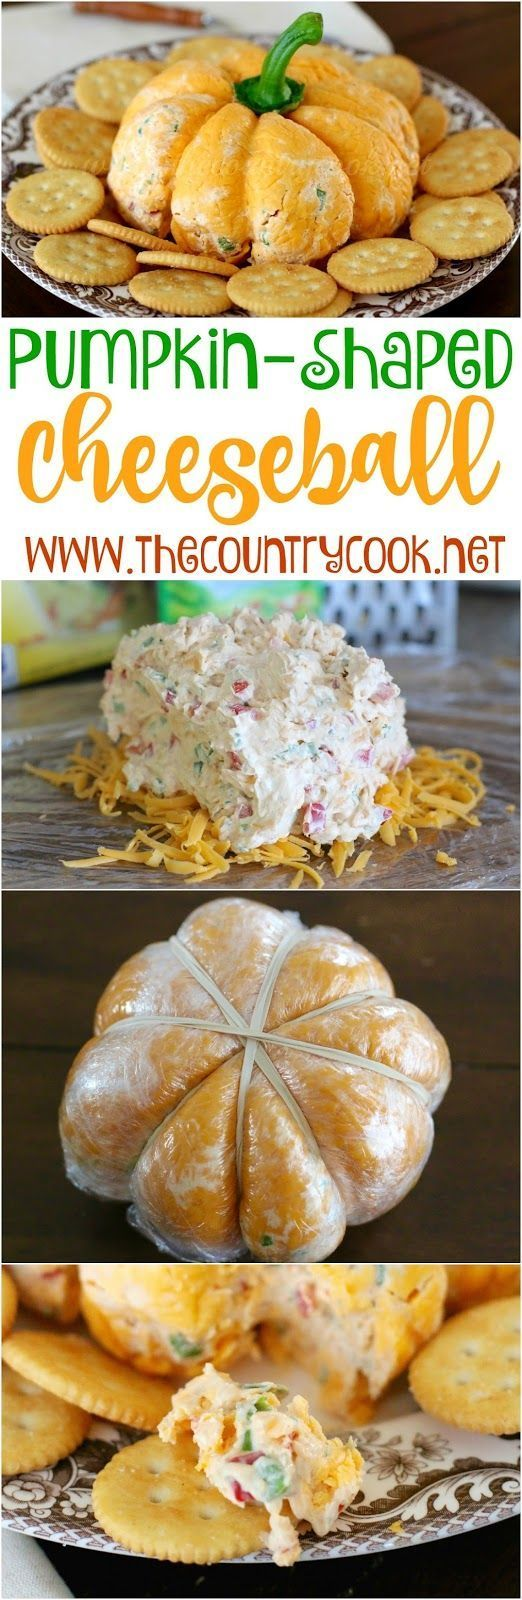 PUMPKIN-SHAPED CHEESEBALL (+Video) | The Country Cook